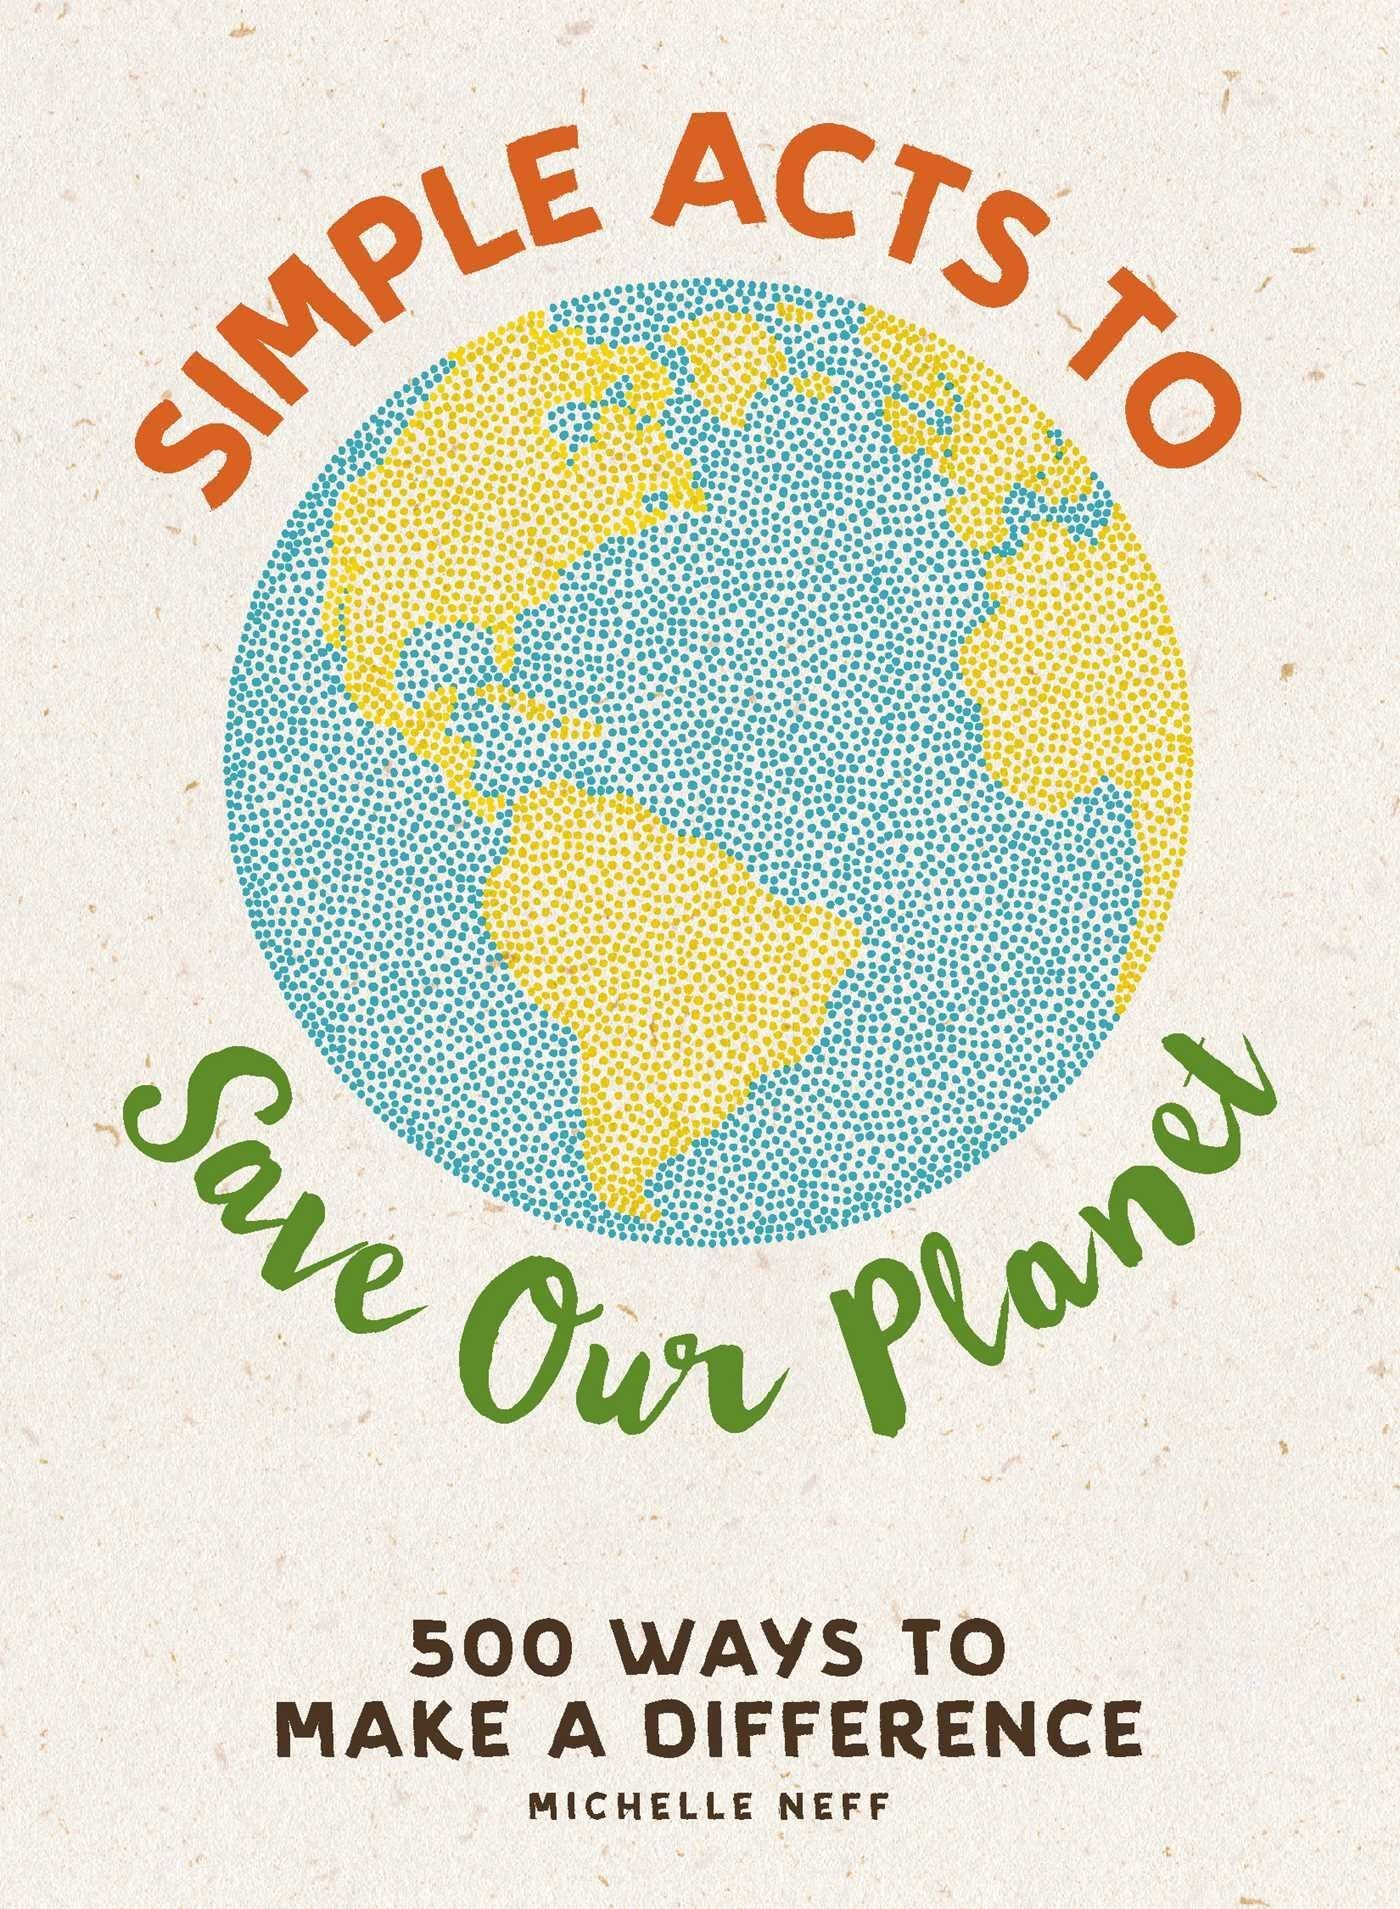 Bookspeed Simple Acts To Save Our Planet Book by Michelle Neff